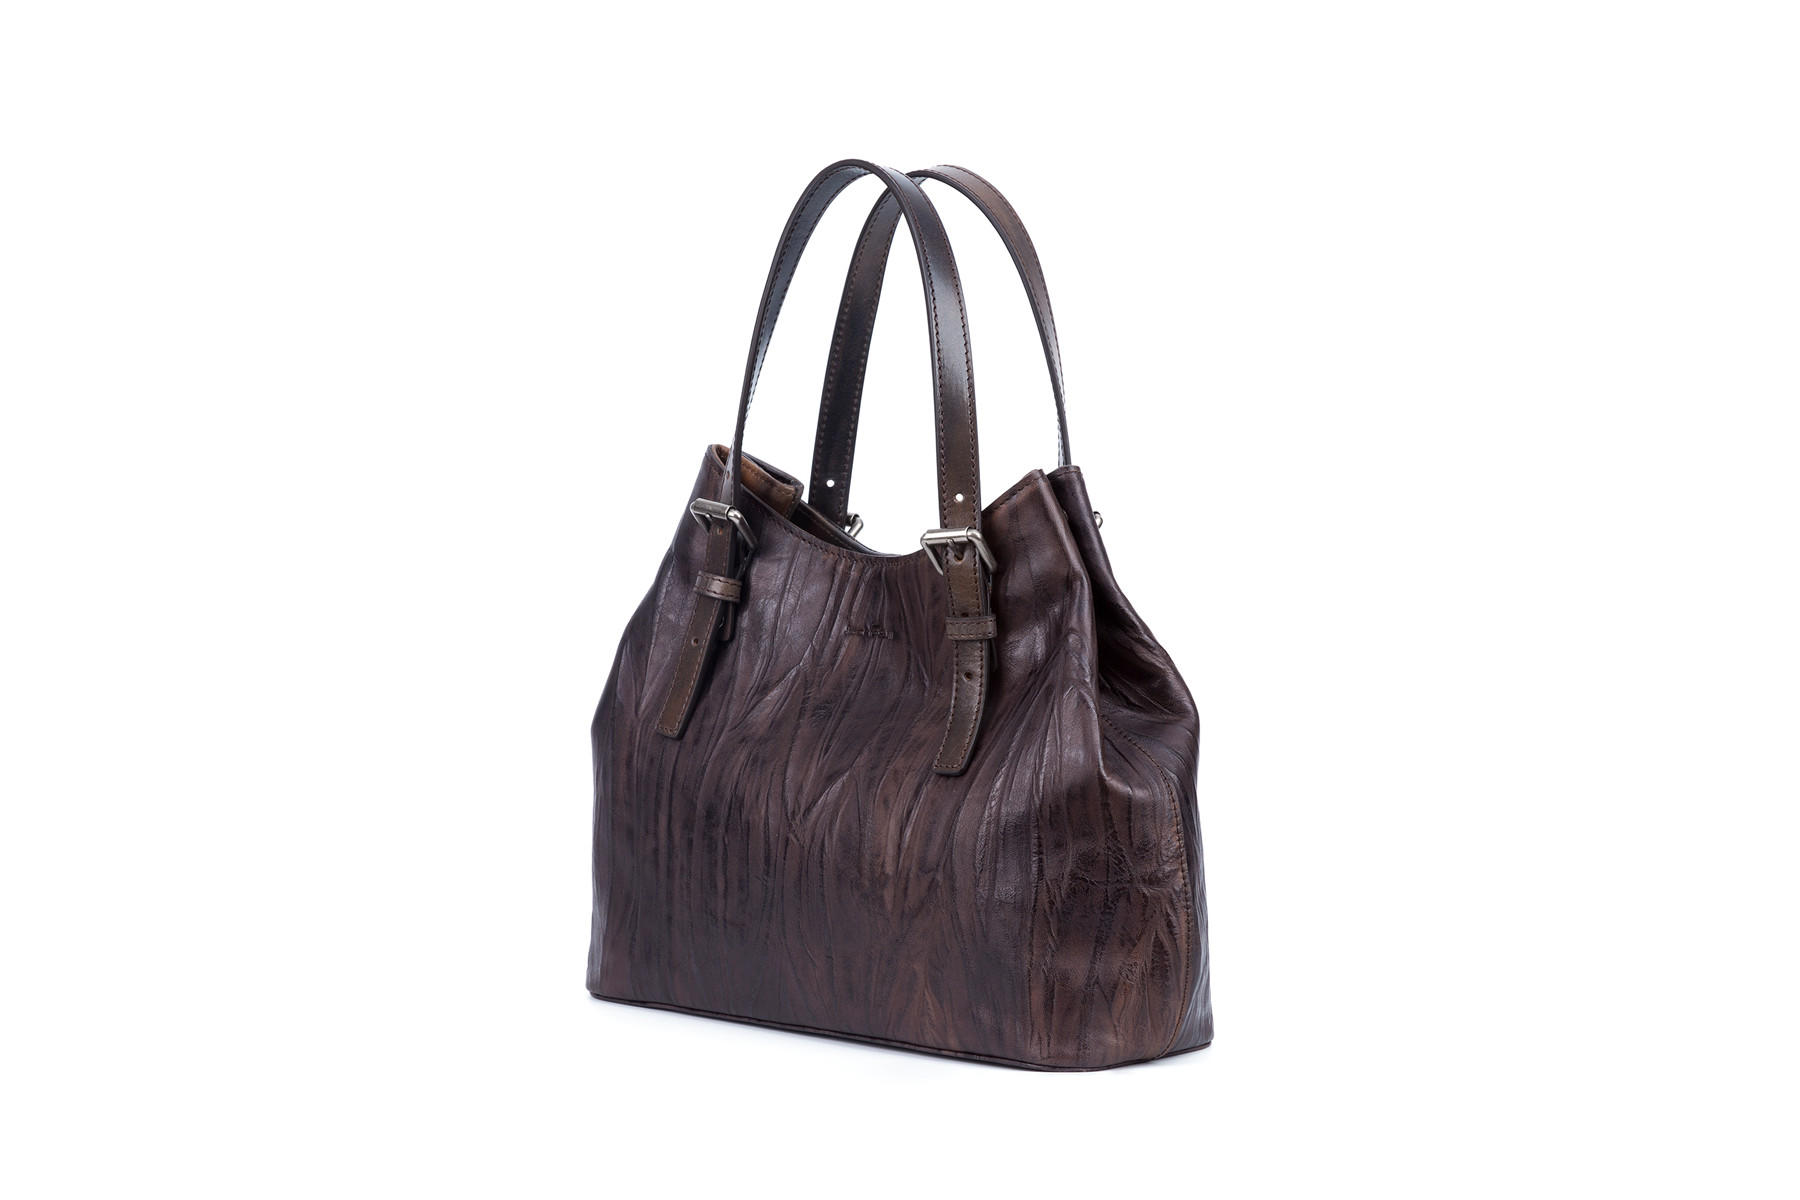 GF bags top latest handbags crocodile for ladies-3